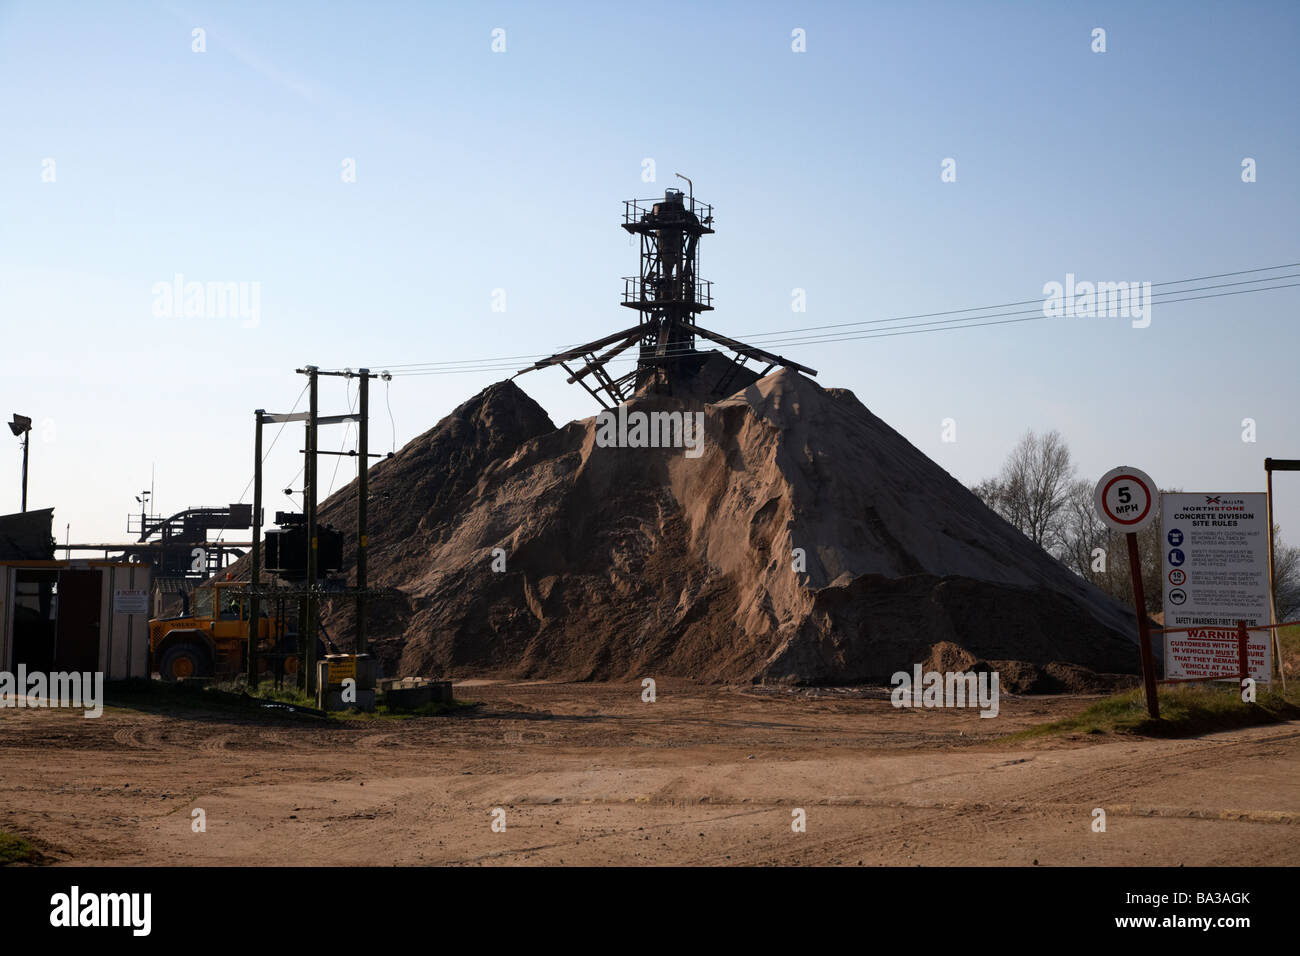 northstone sand extraction and processing plants on the shores of lough neagh county antrim northern ireland - Stock Image